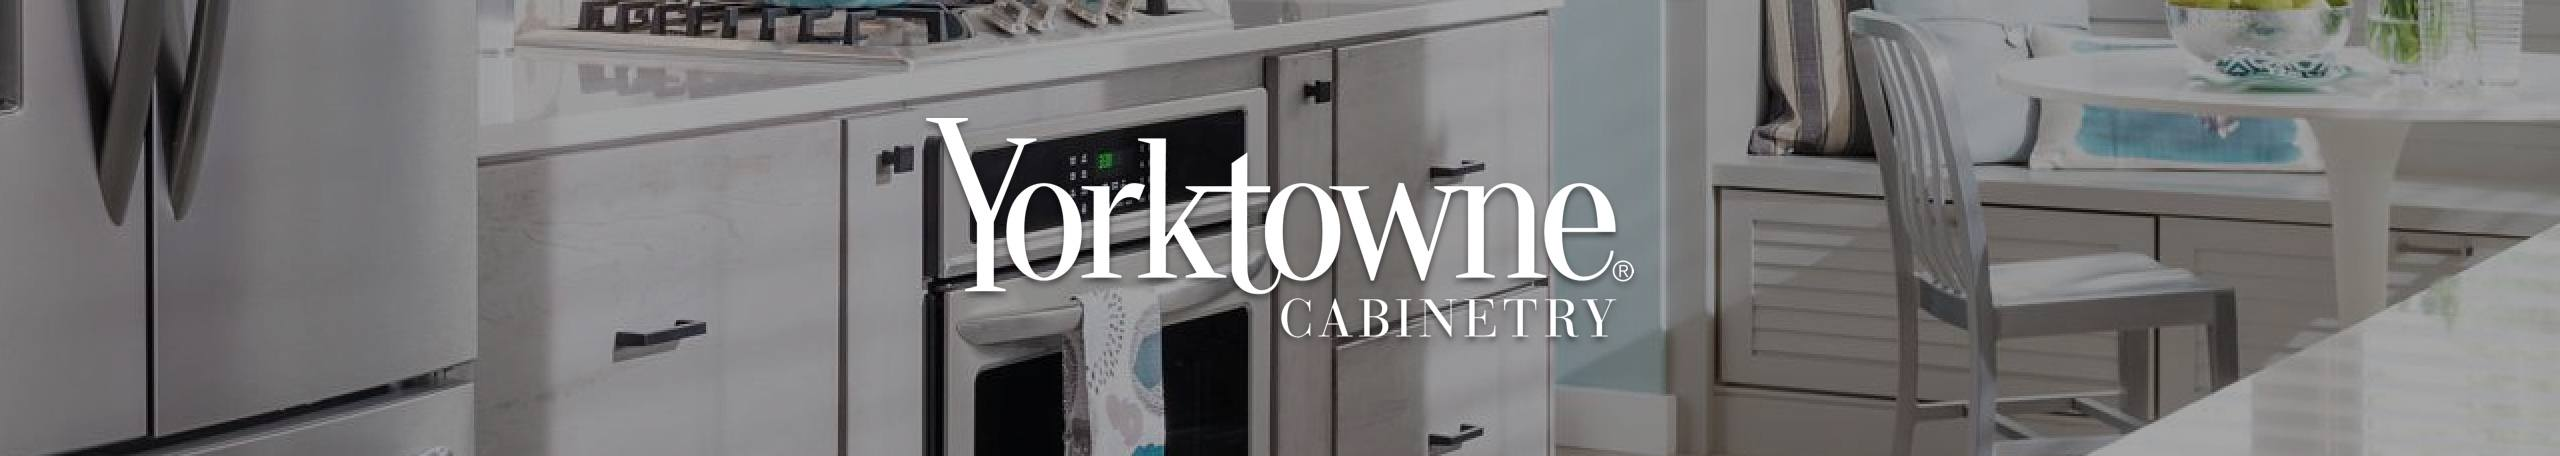 Yorktowne Cabinetry logo with kitchen in background